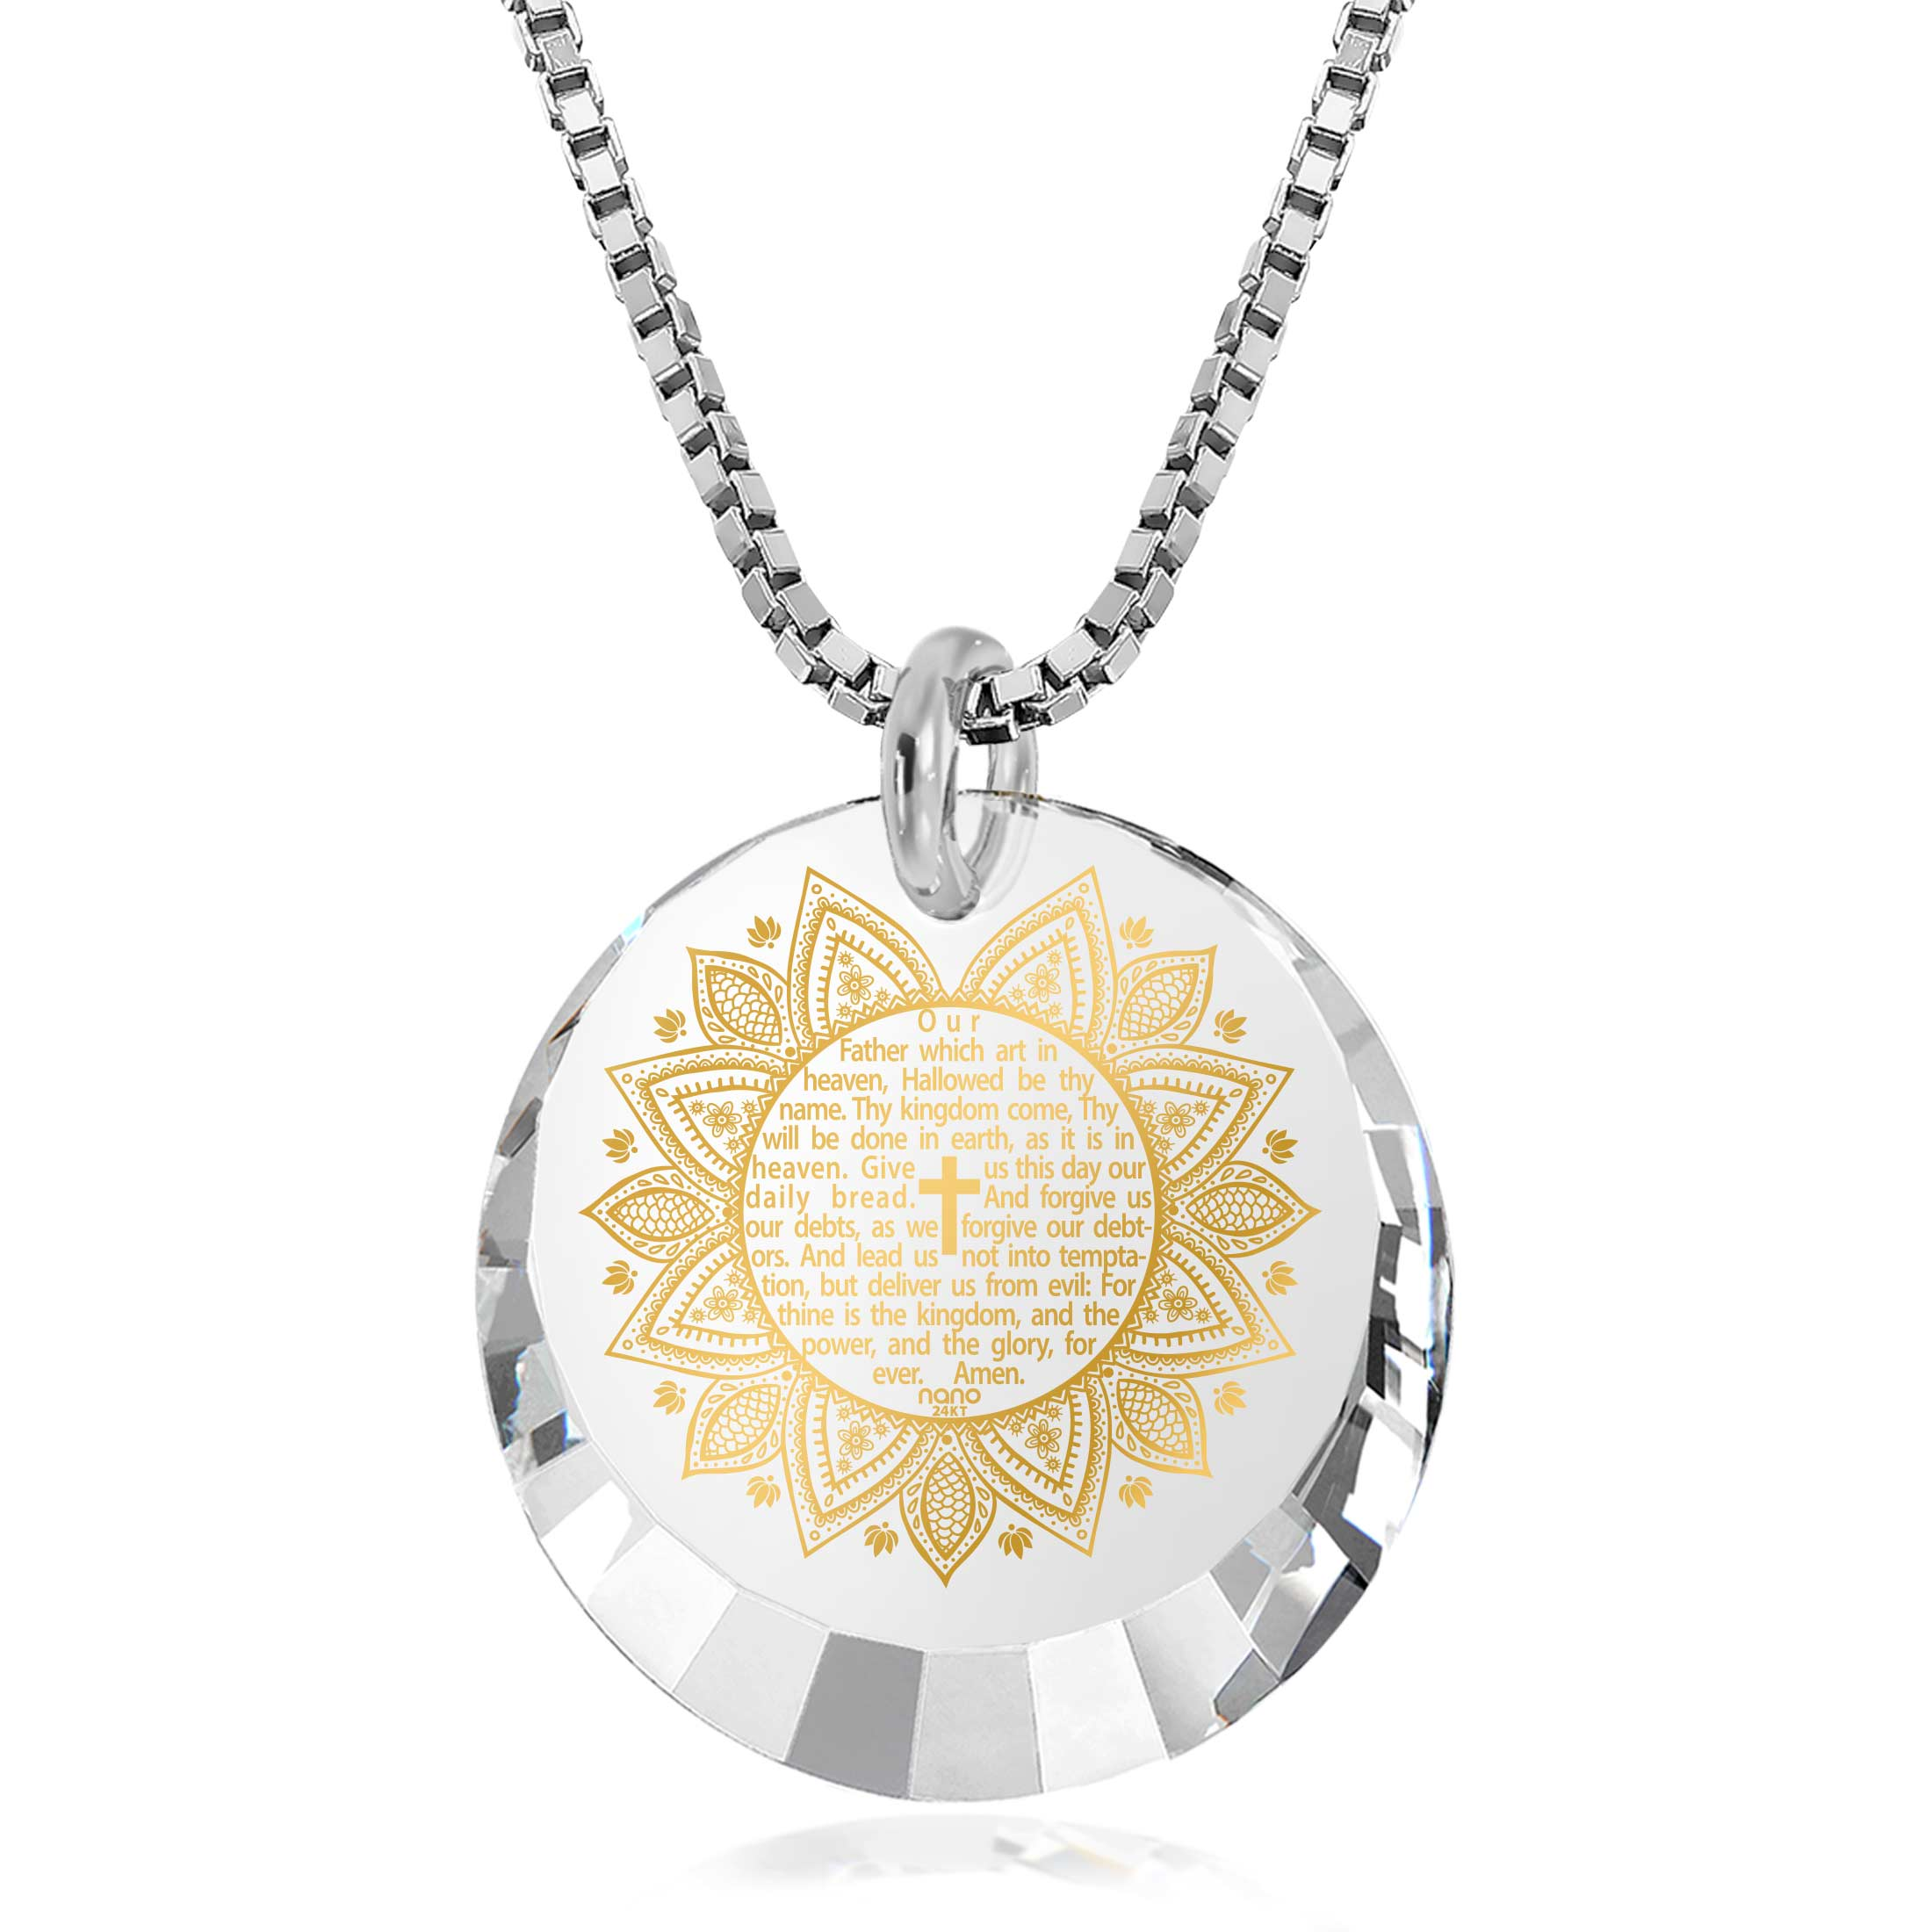 Best Christian Gifts: The Lord's Prayer Song KJV - Round Factted 12mm CZ - 14K White Gold - Nano Jewelry